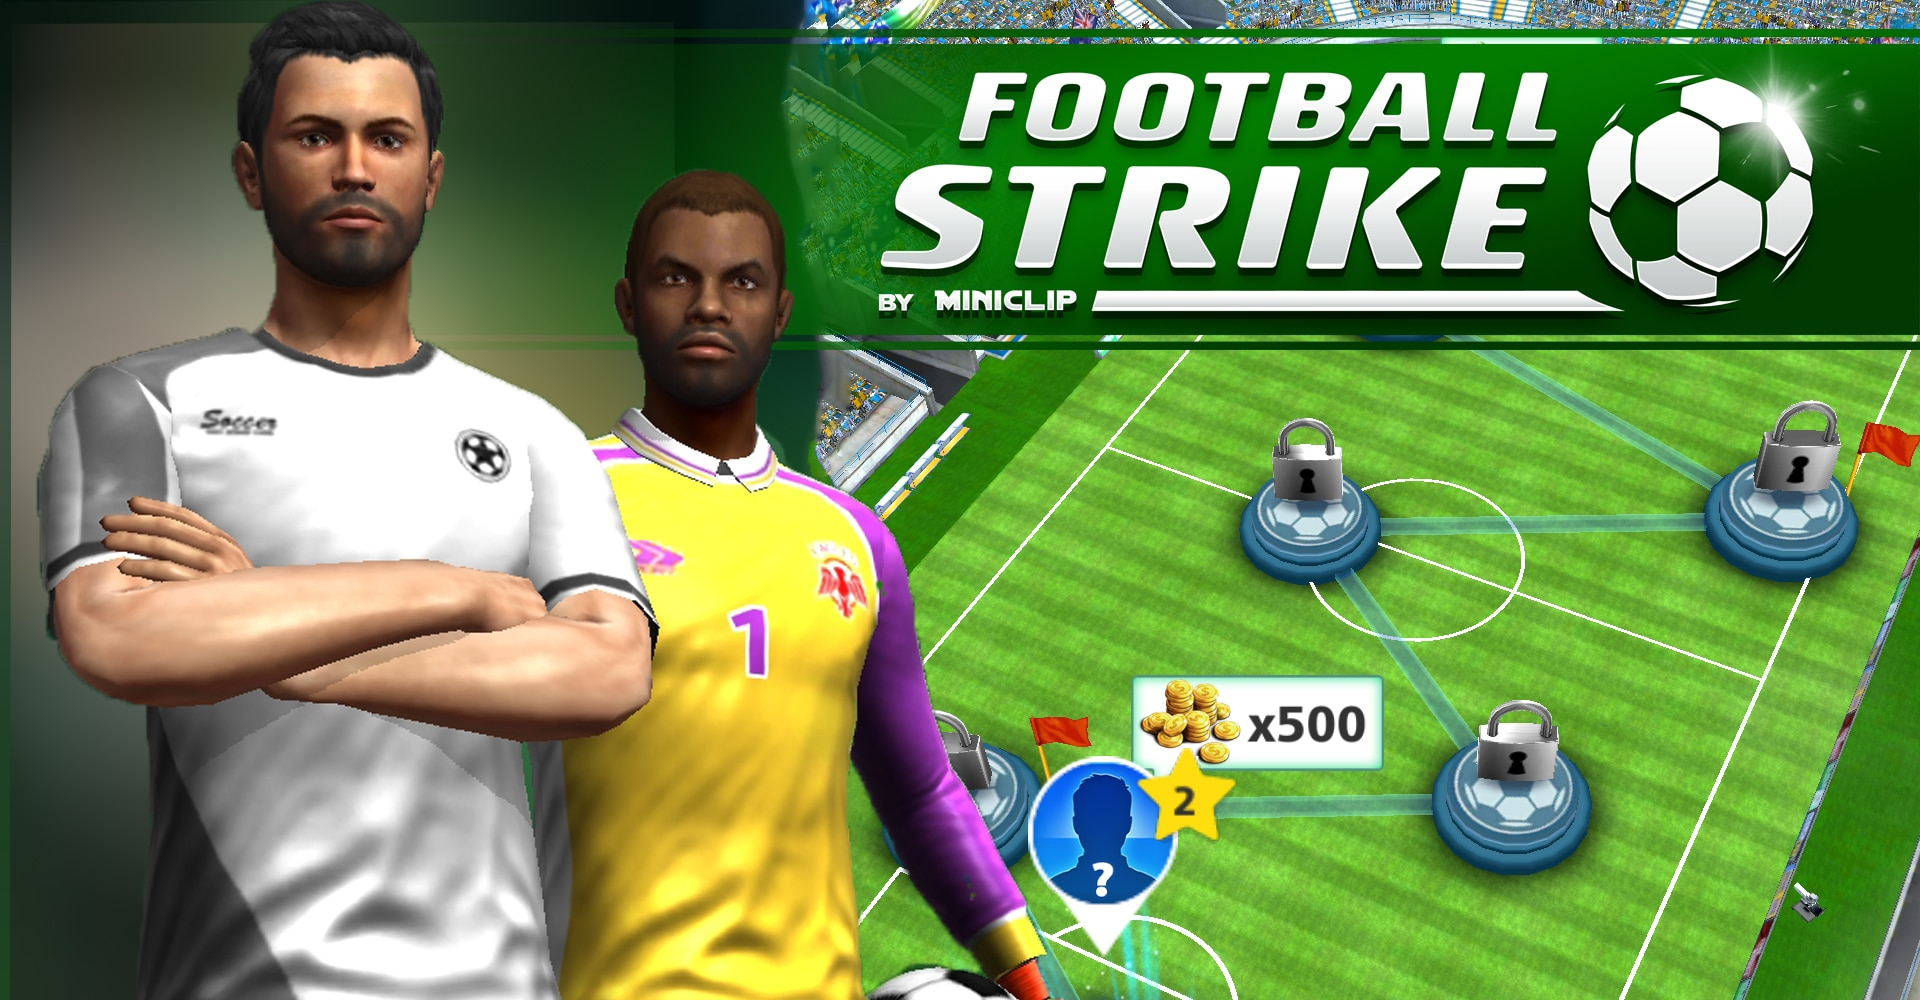 Download FOOTBALL STRIKE APK - For Android/iOS 20